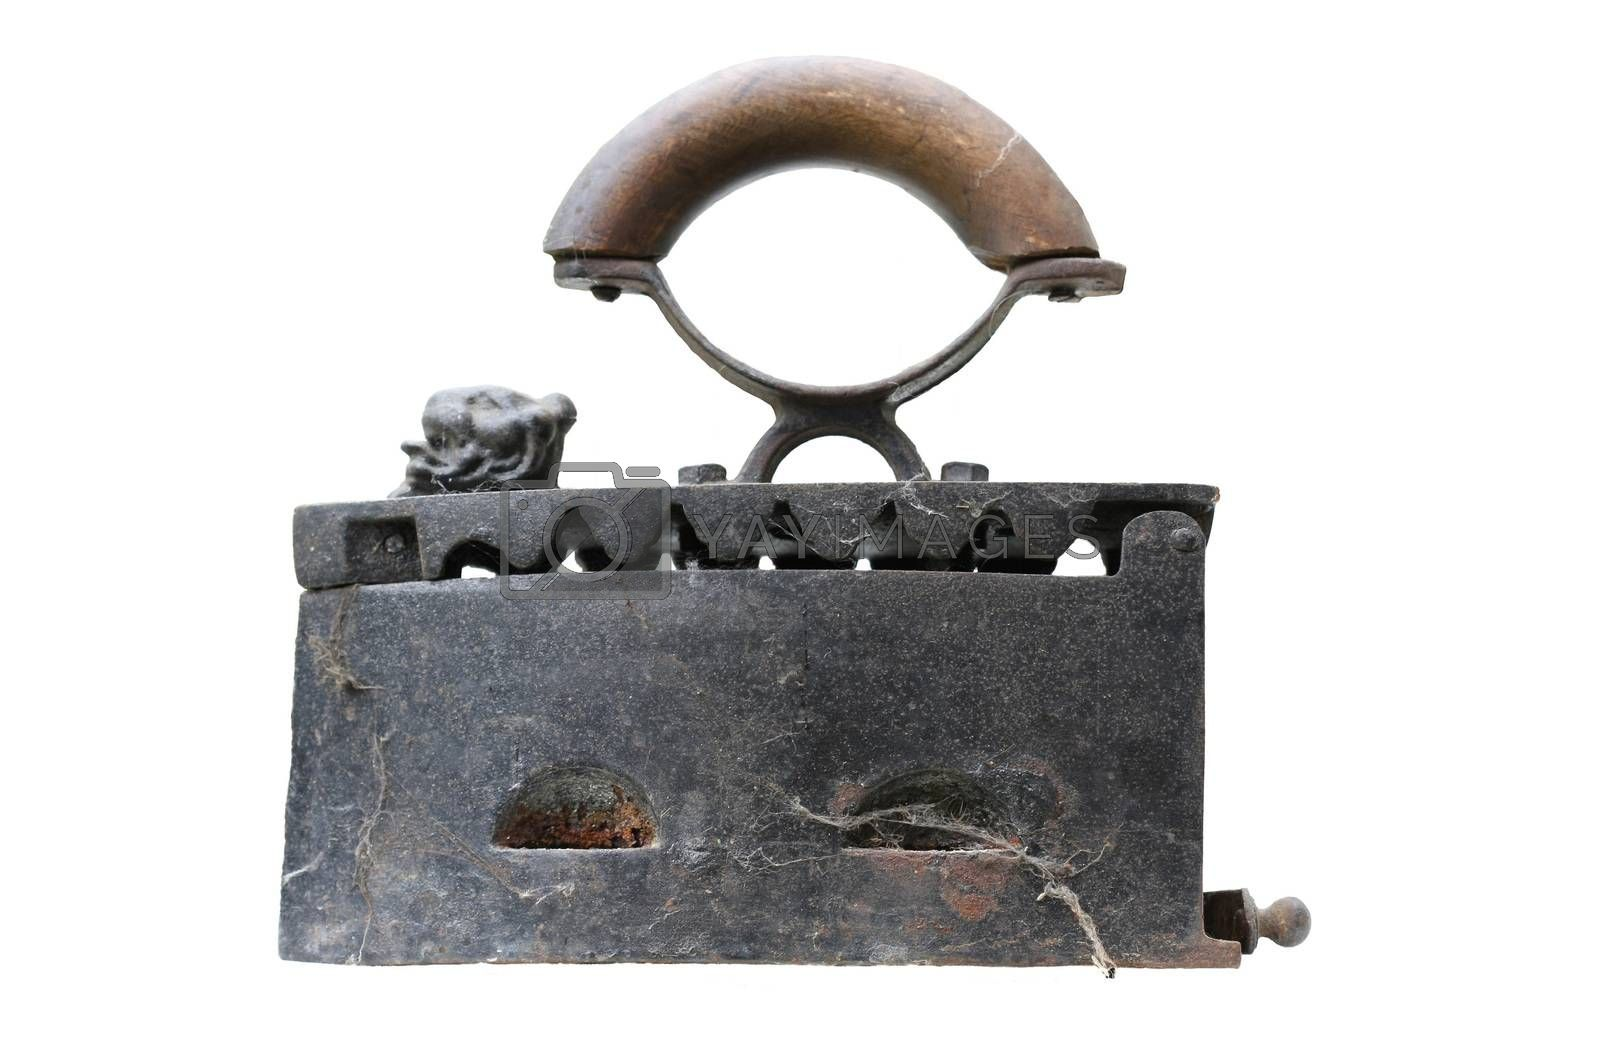 Old iron for which a coal was used for warming